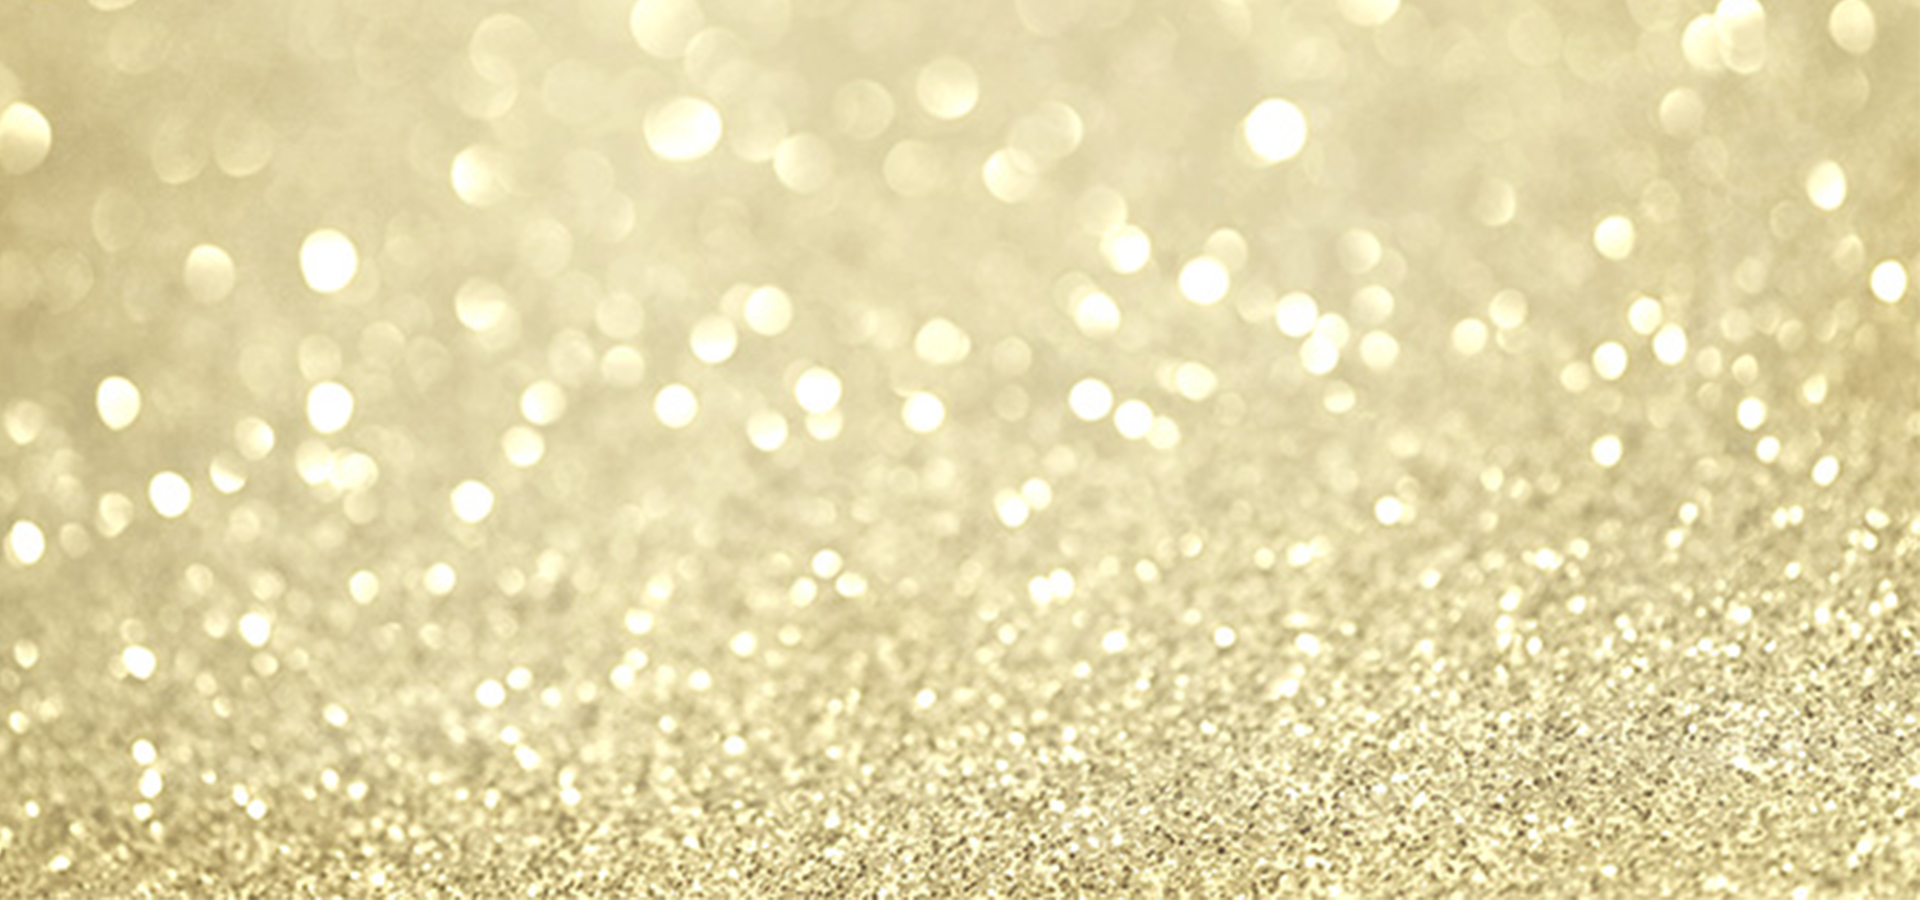 Simple Gold Crystal Texture Texture Map, Sparkle, Golden ...